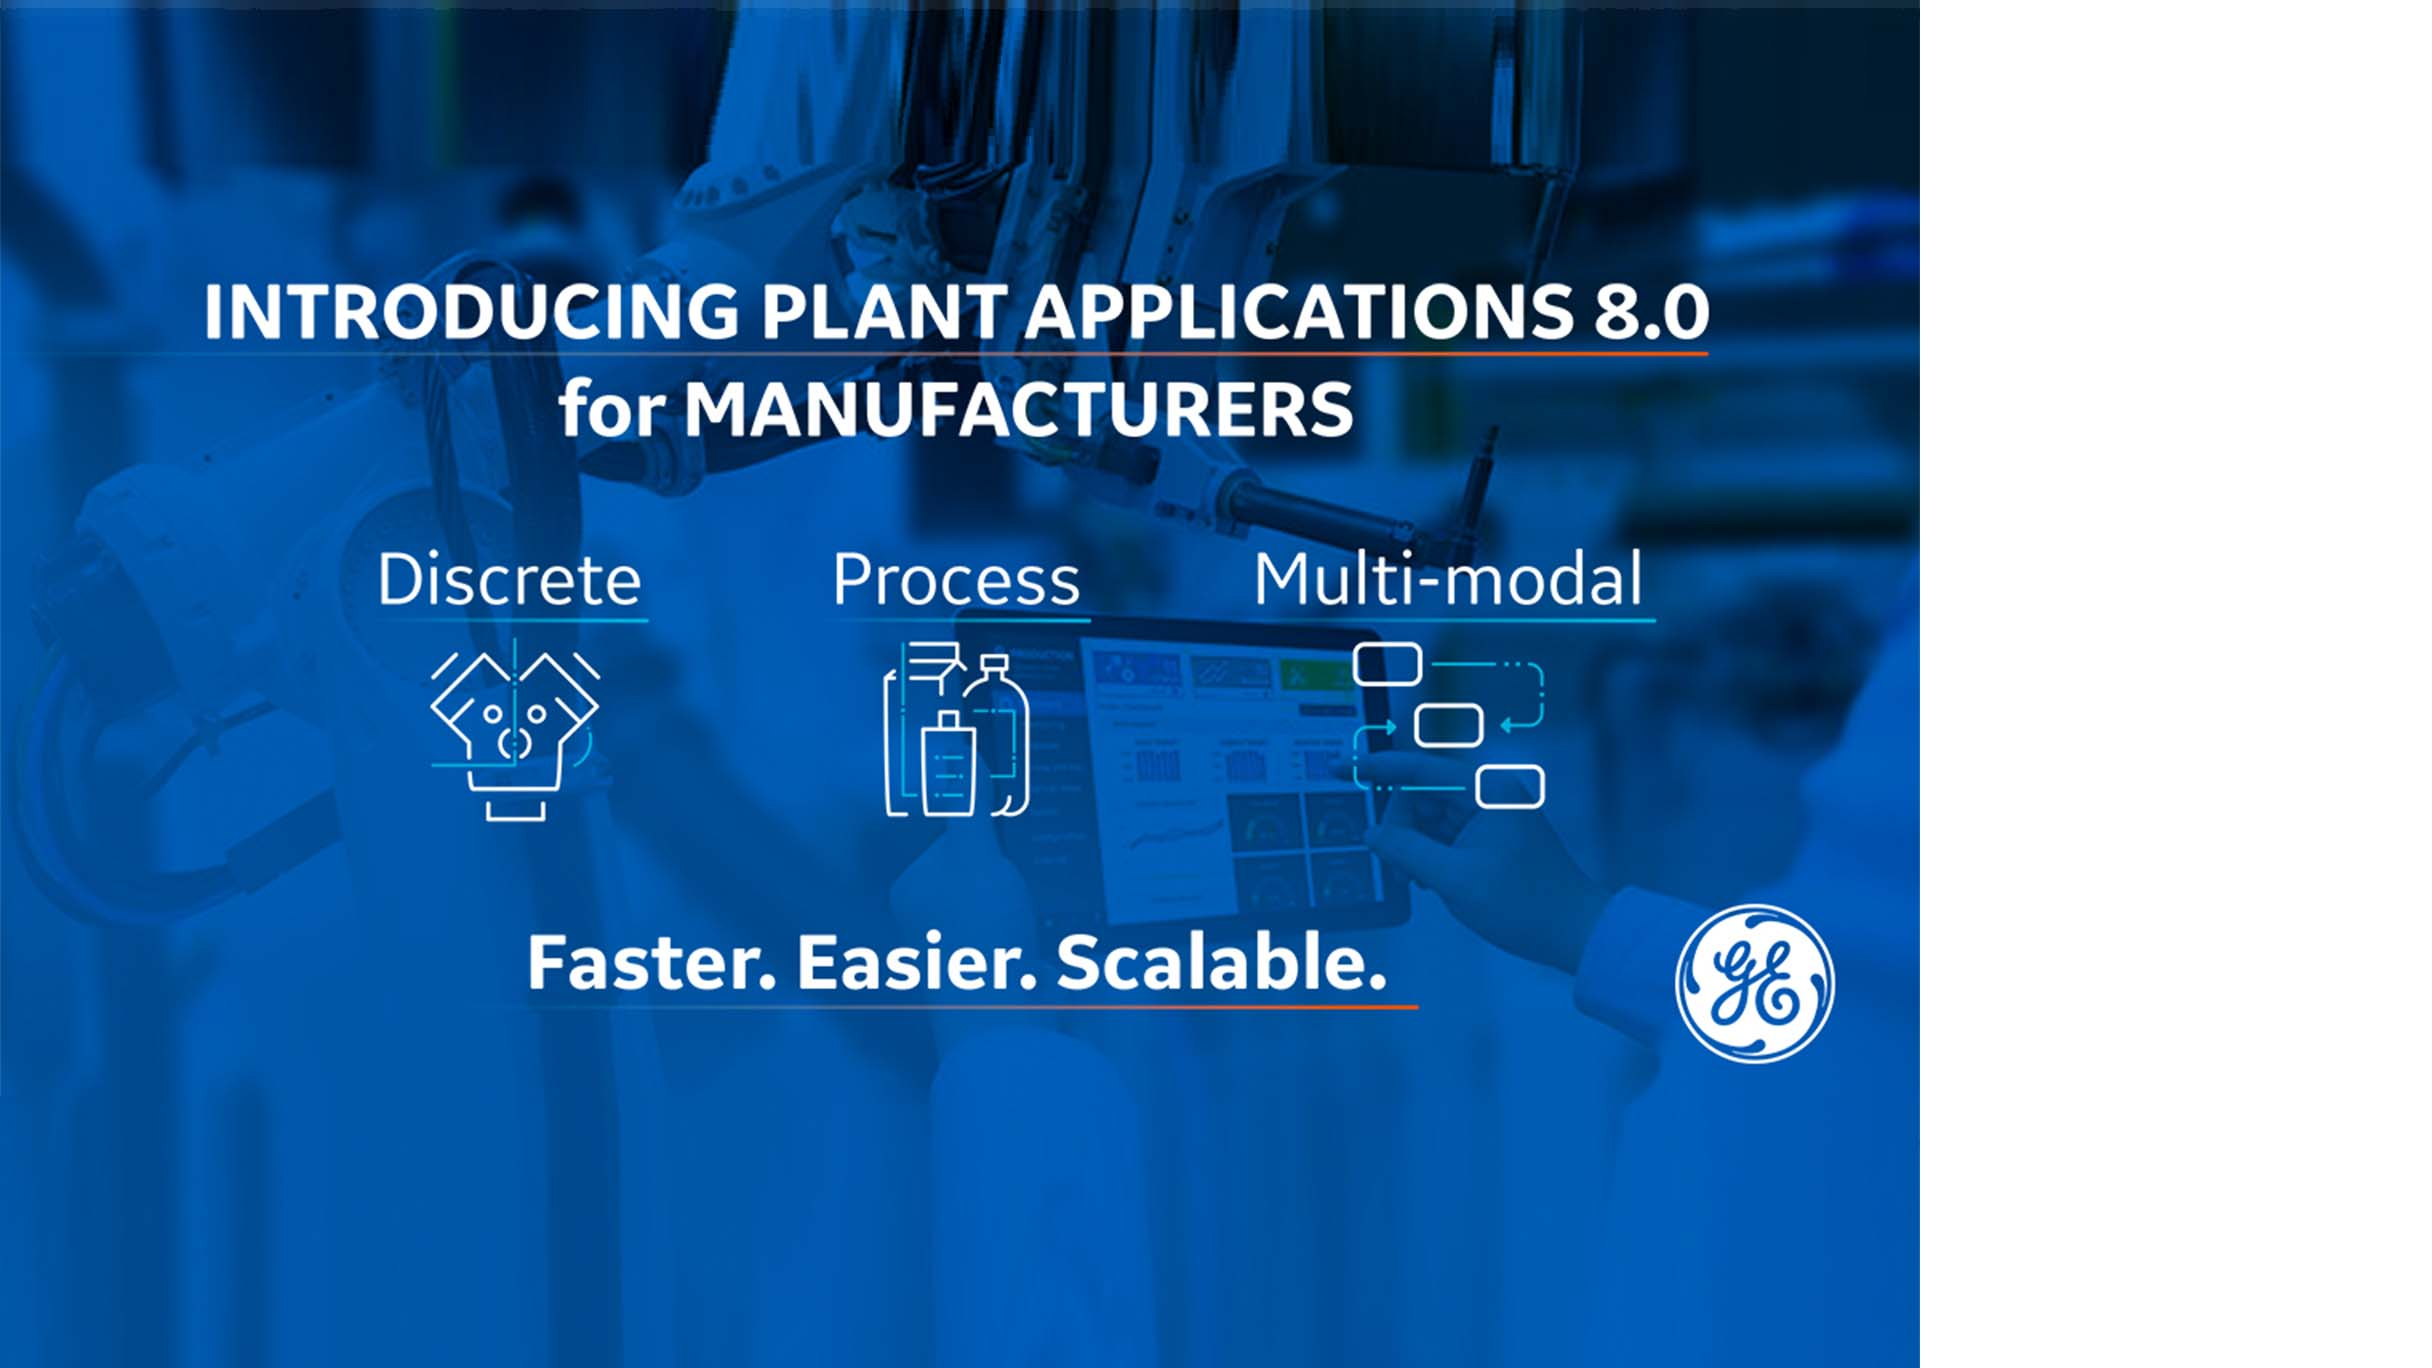 Plant Applications from GE Digital enables real-time KPIs | launch data